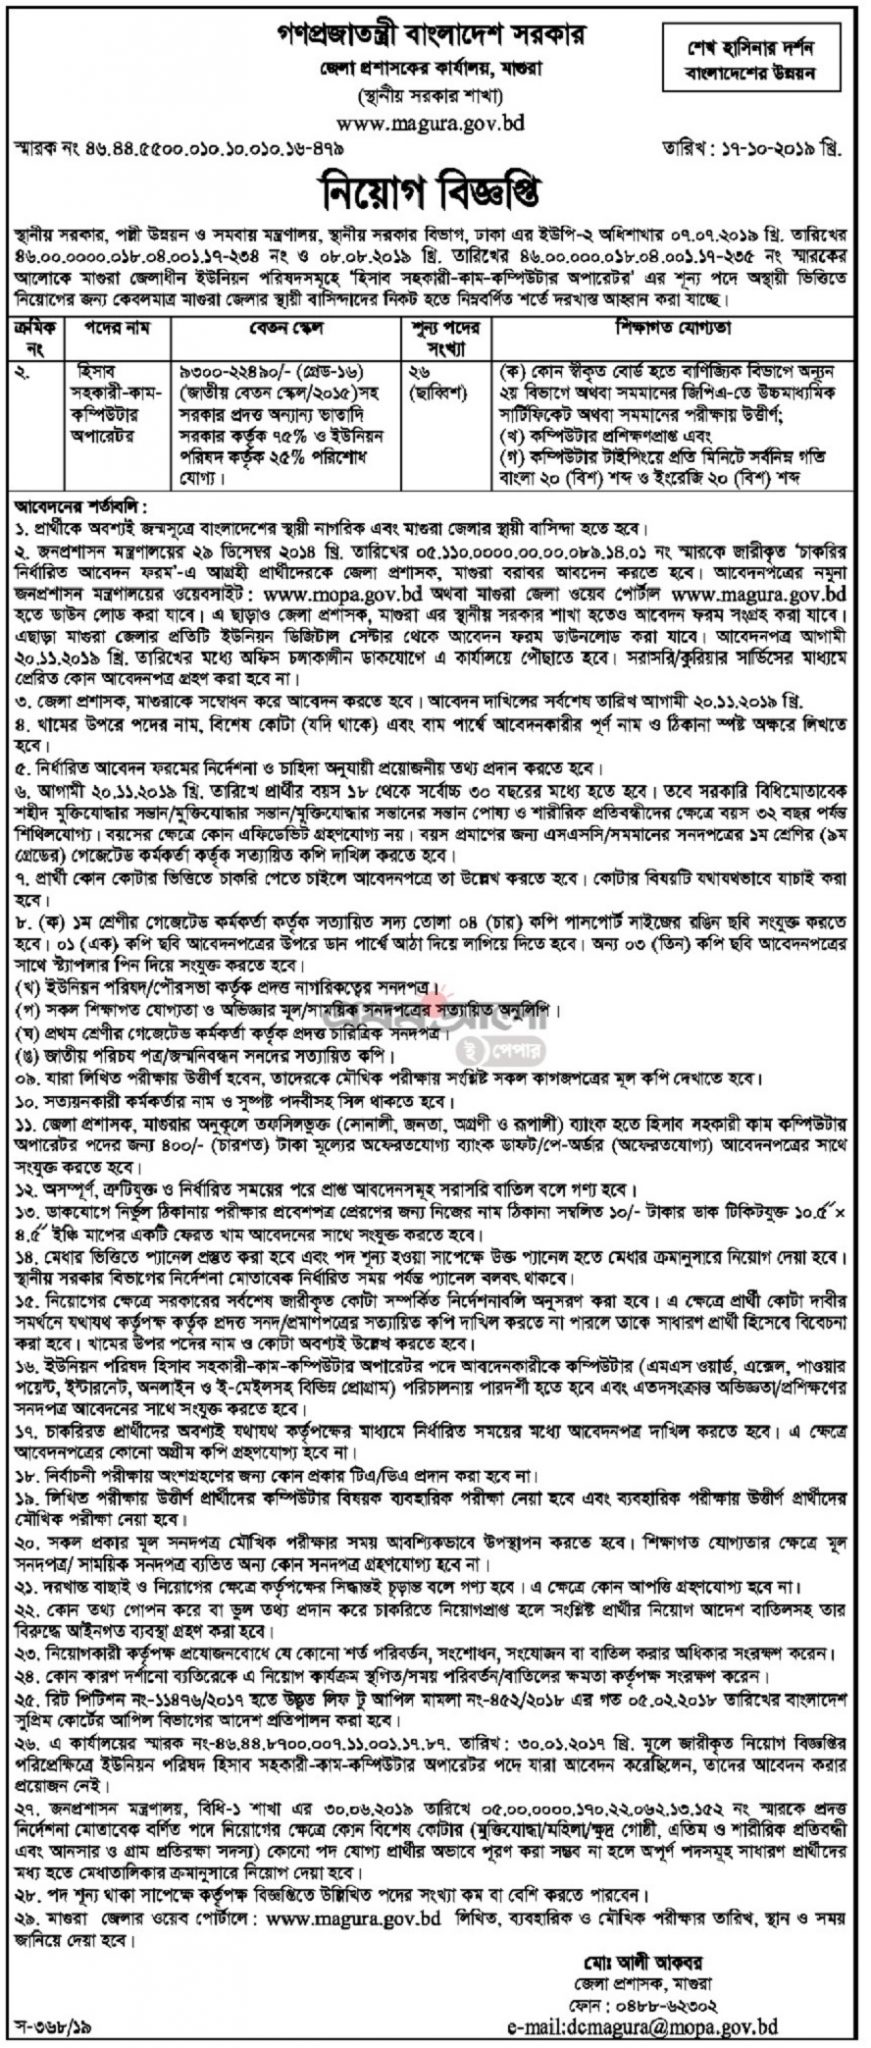 Magura Deputy Commissioner's Office Job Circular 2019